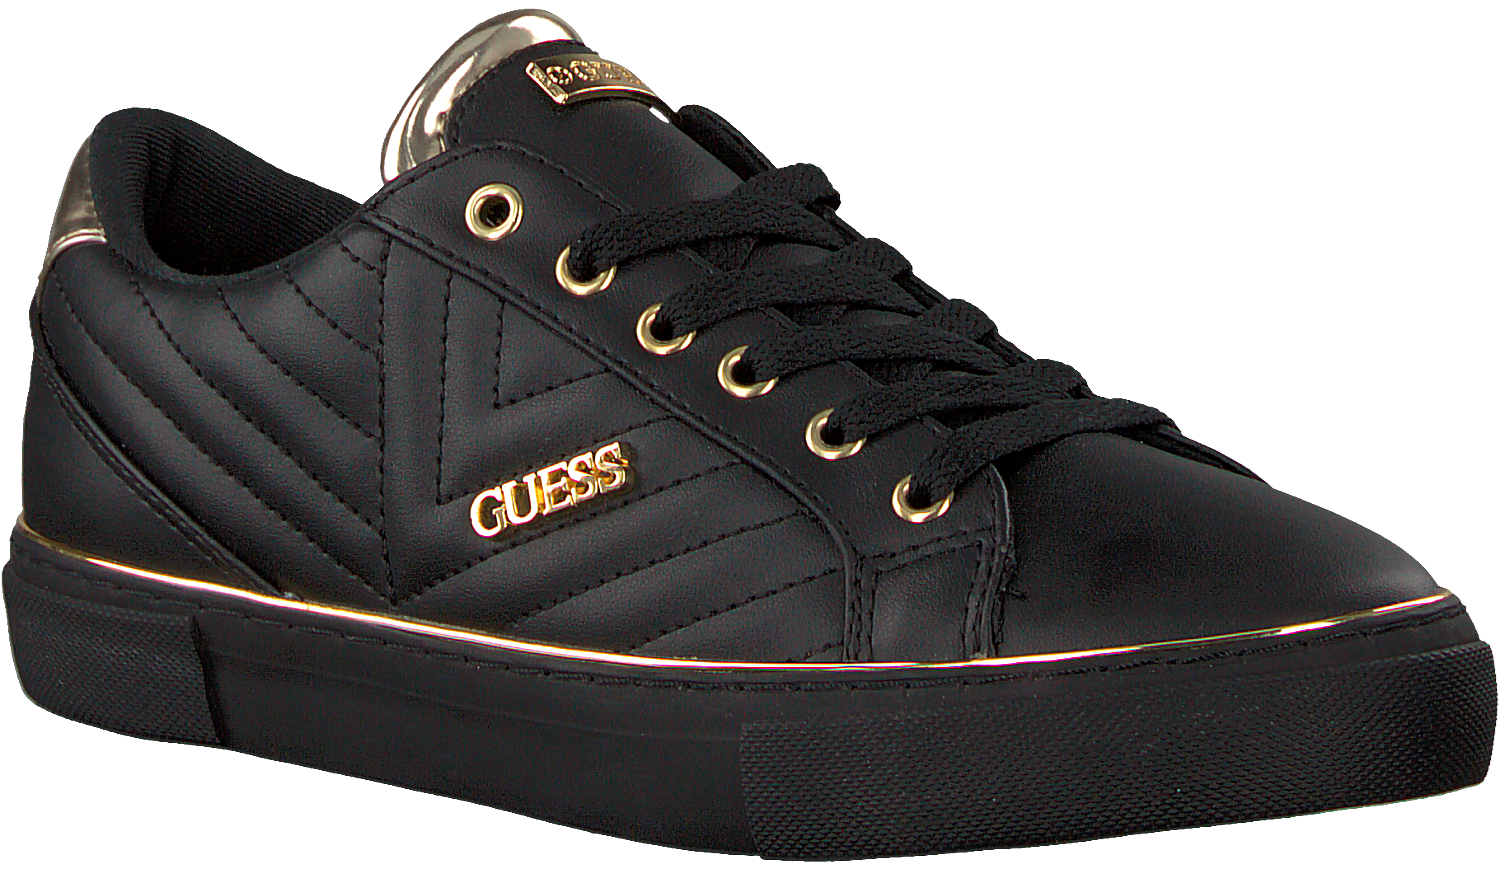 1ee276c0206 Zwarte GUESS Sneakers GROOVIE. GUESS. Previous